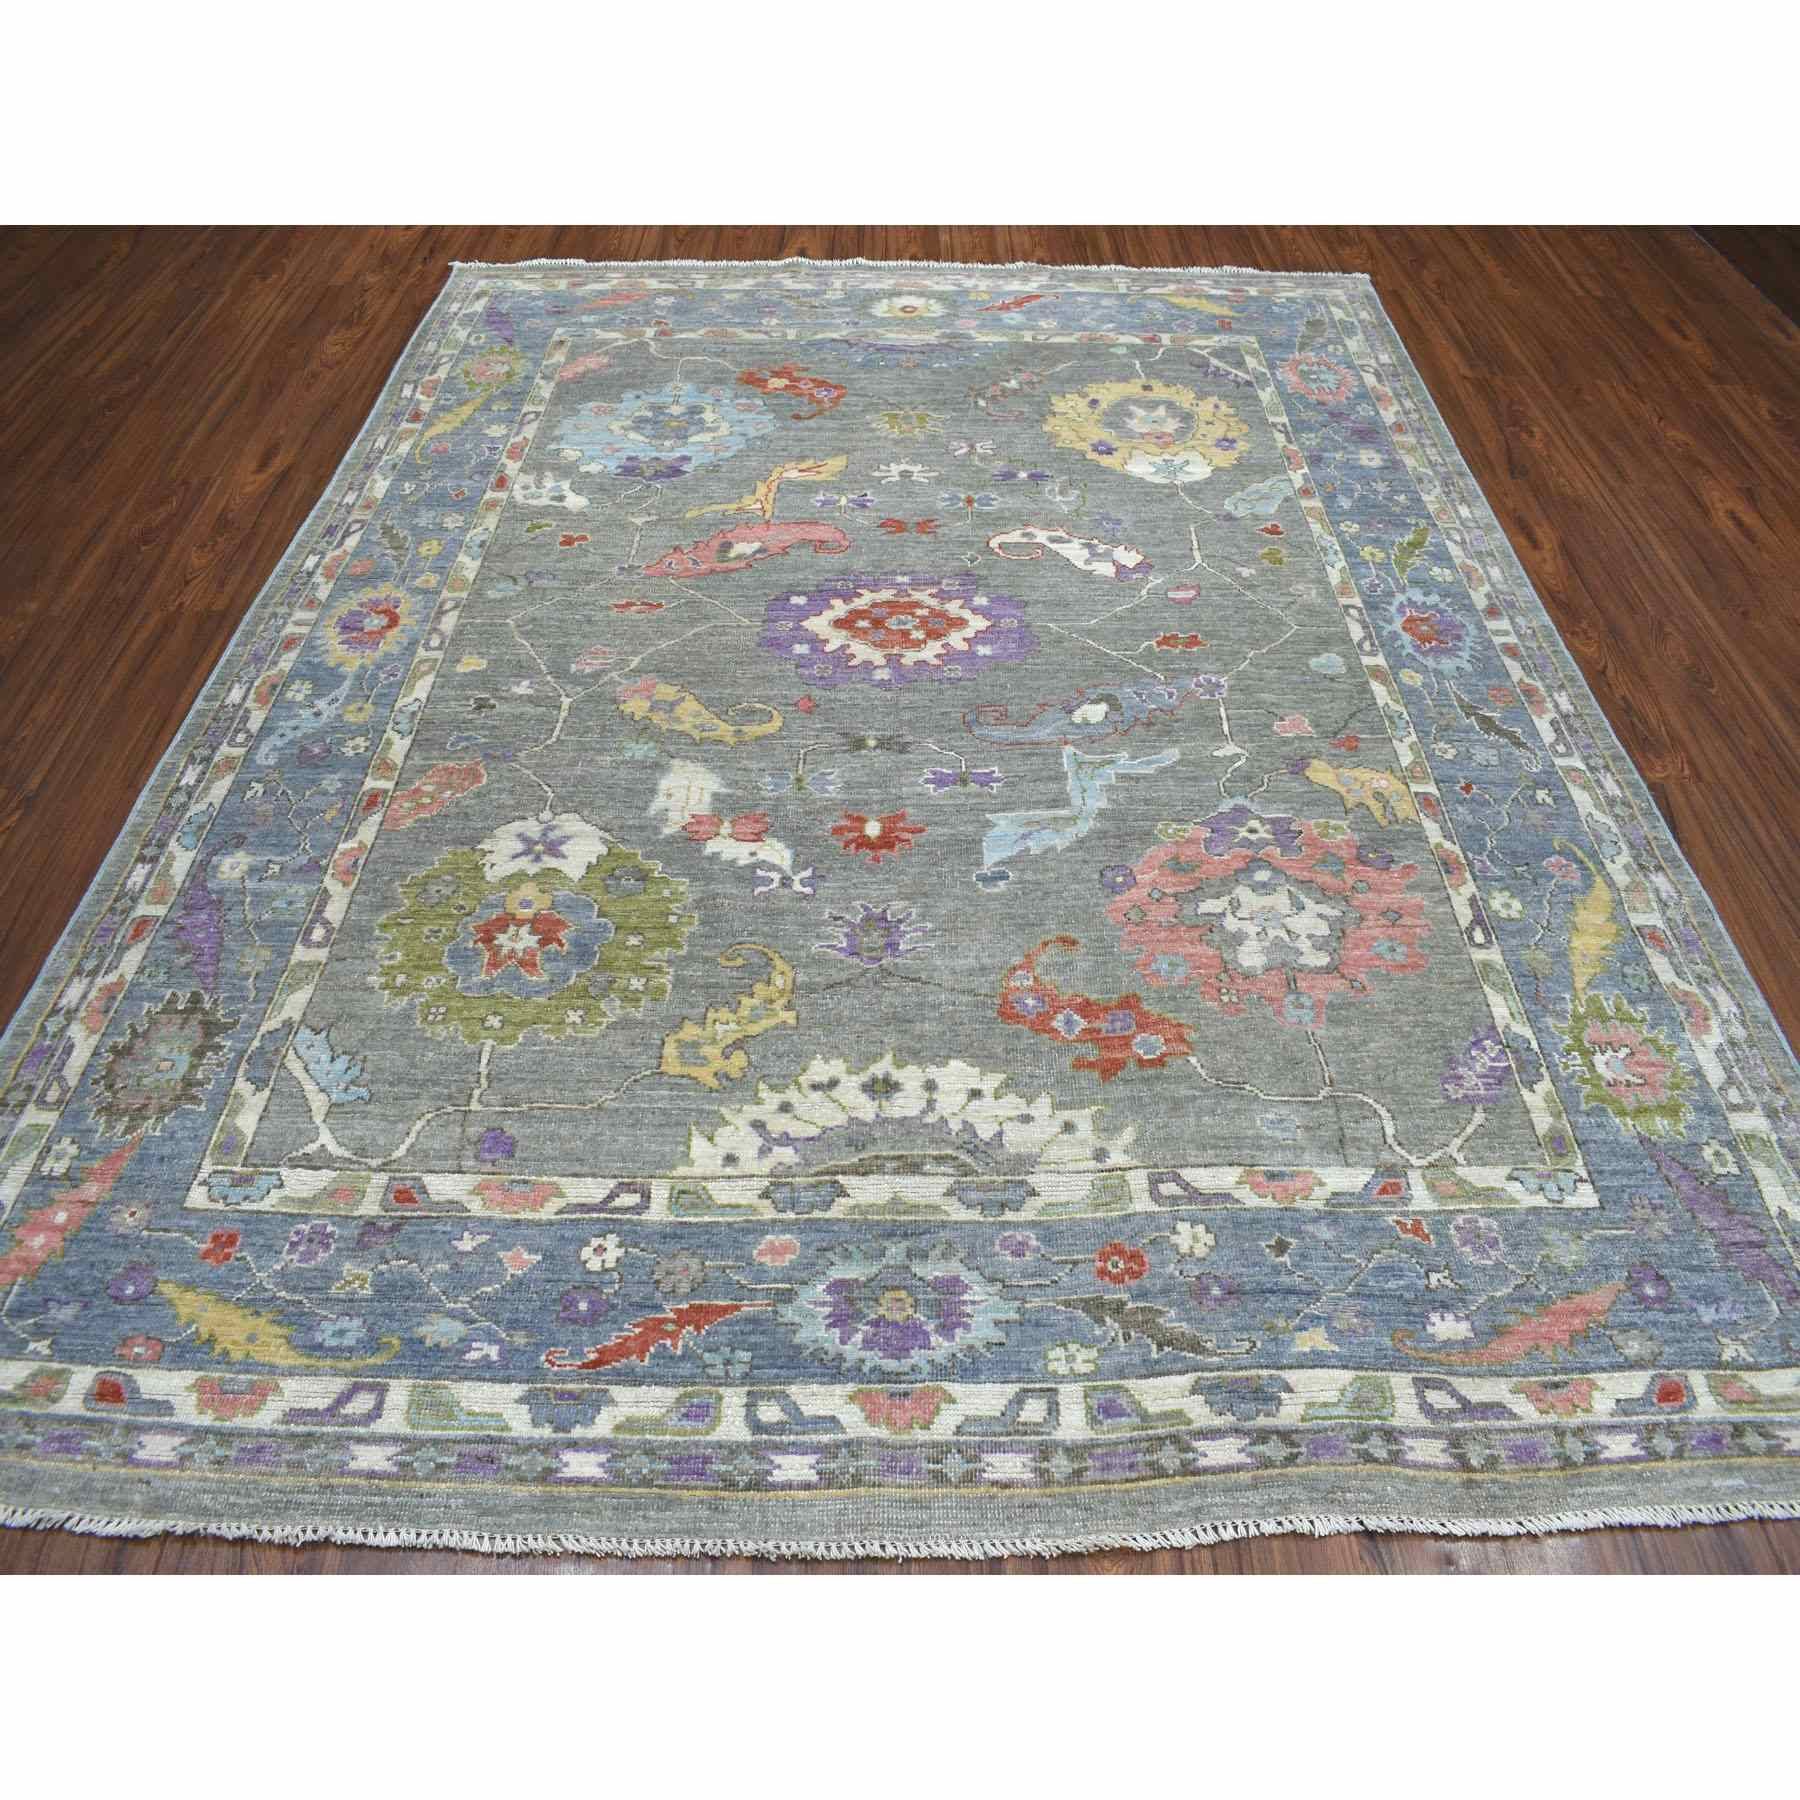 Oushak-And-Peshawar-Hand-Knotted-Rug-263450